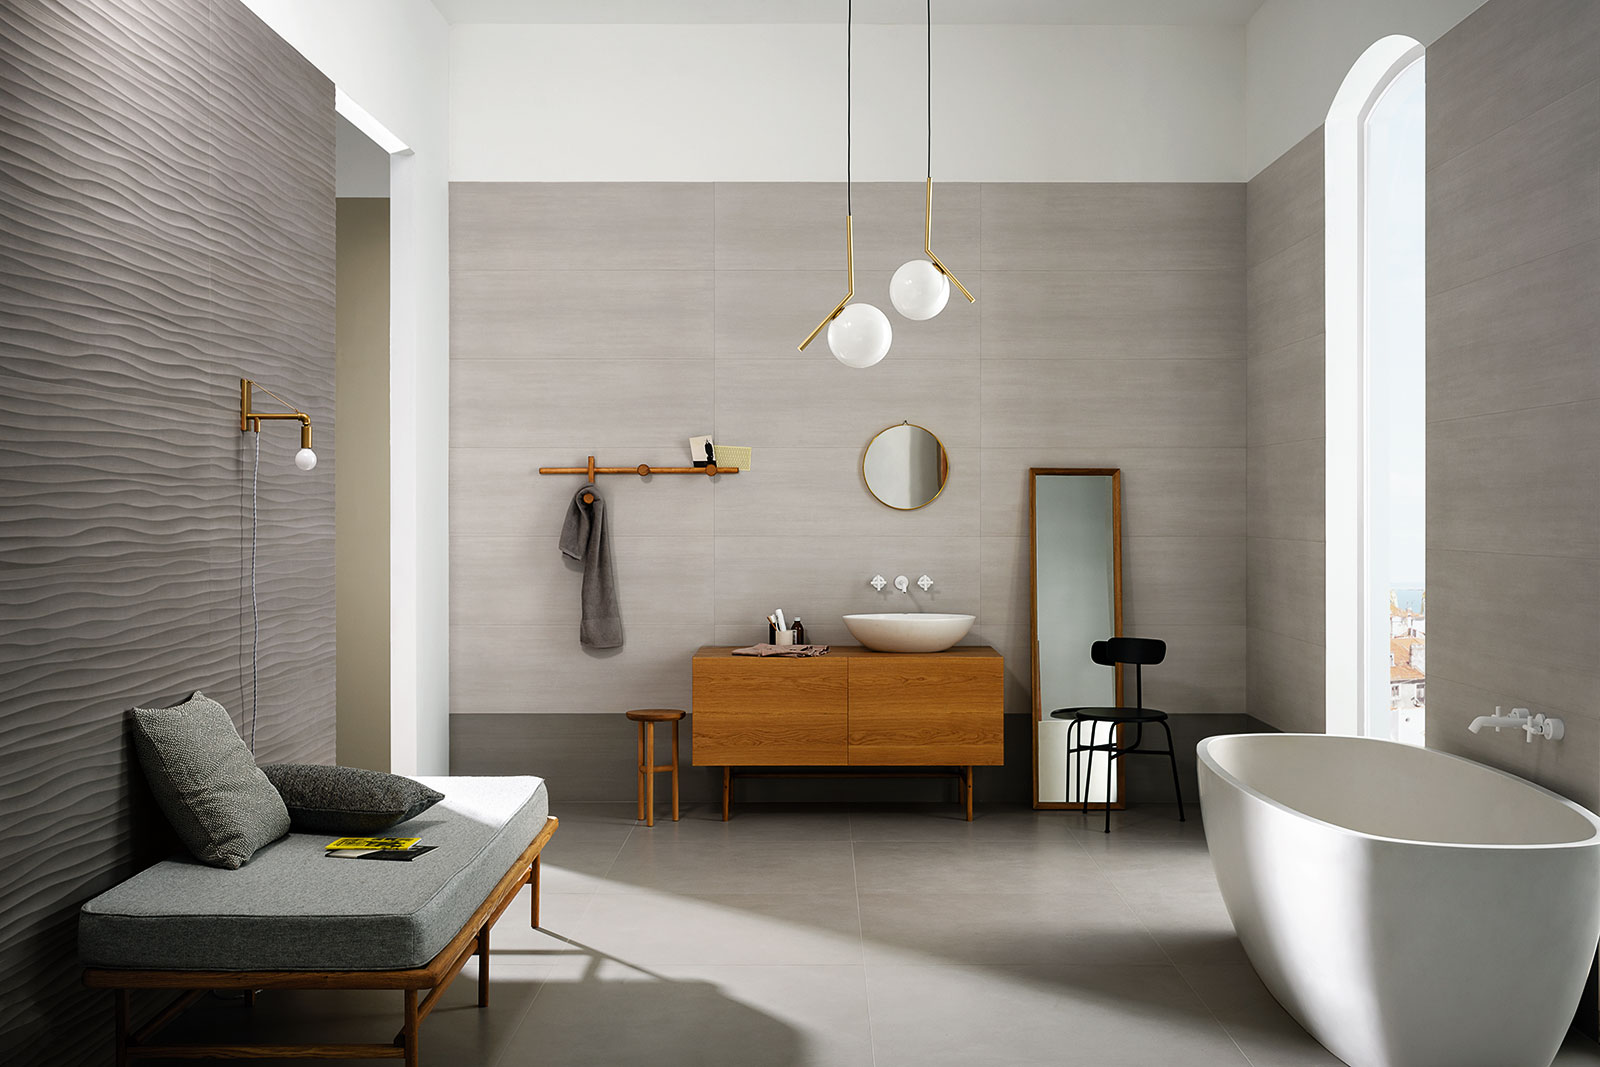 mattonelle per bagno ceramica e gres porcellanato marazzi. Black Bedroom Furniture Sets. Home Design Ideas